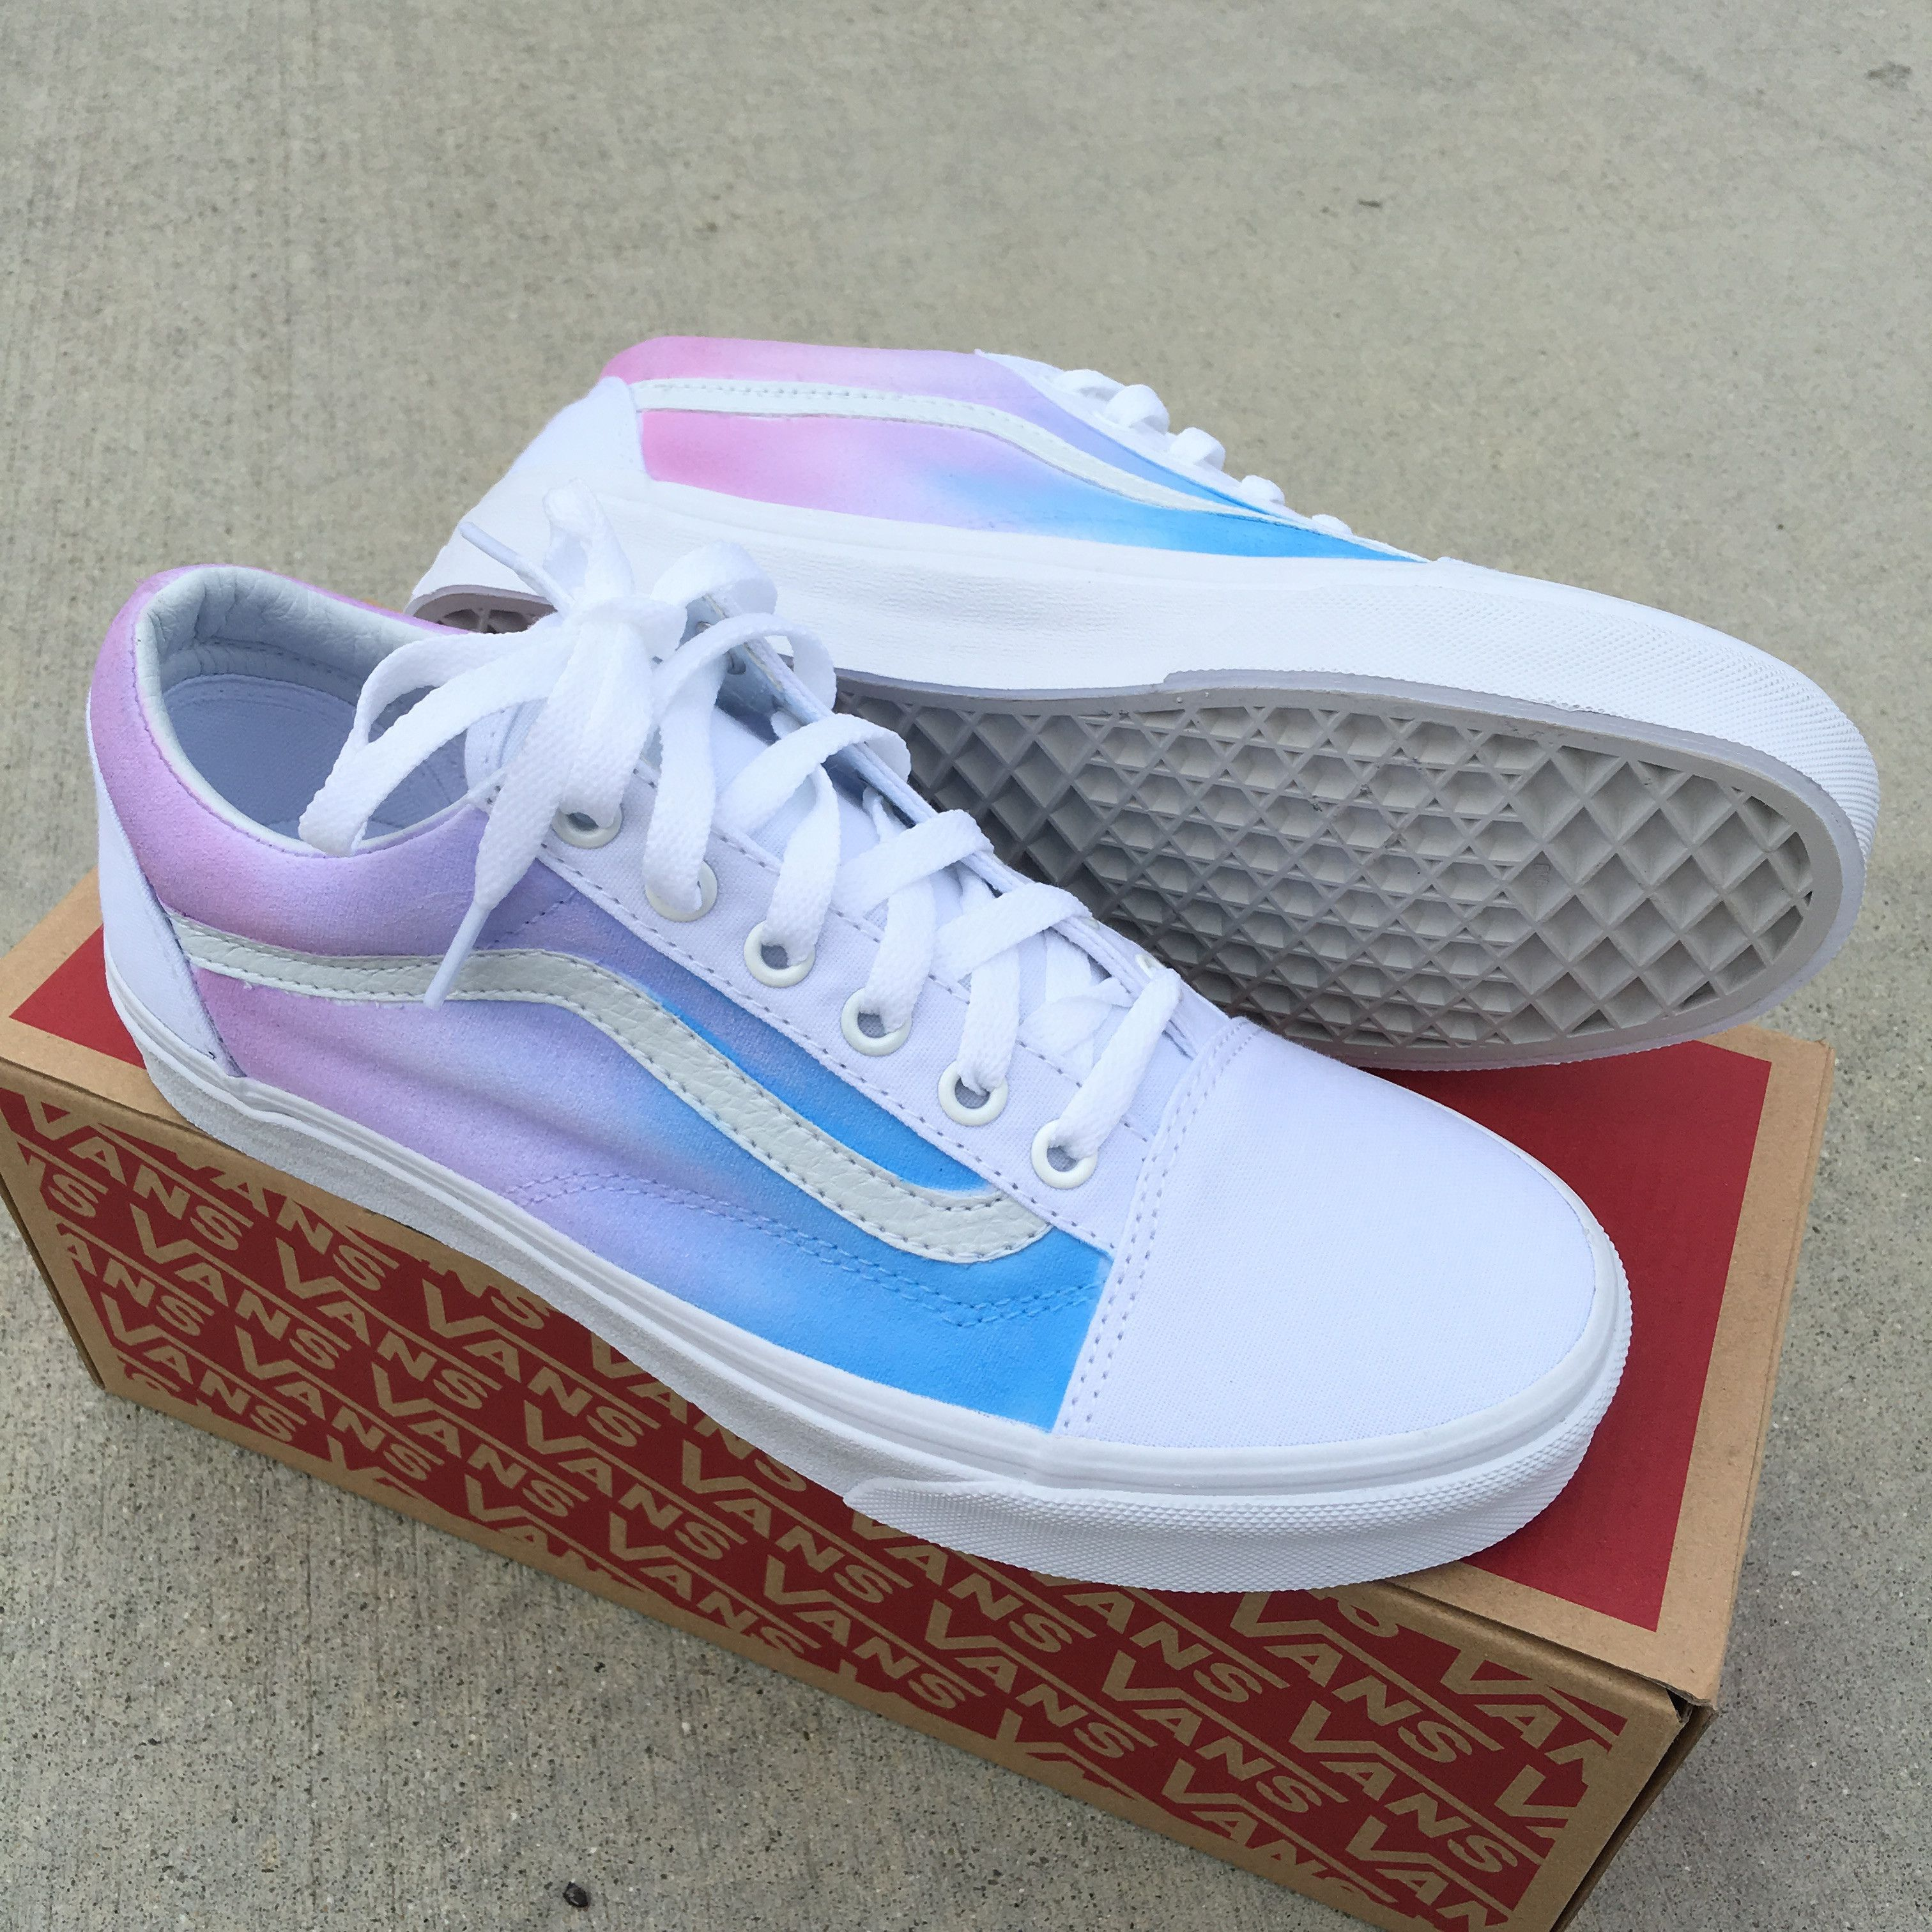 570caf23da These True White Vans Old Skool Sneakers have been painted with a pastel  color ombre gradient on the sides of the shoes. The light blue color starts  towards ...